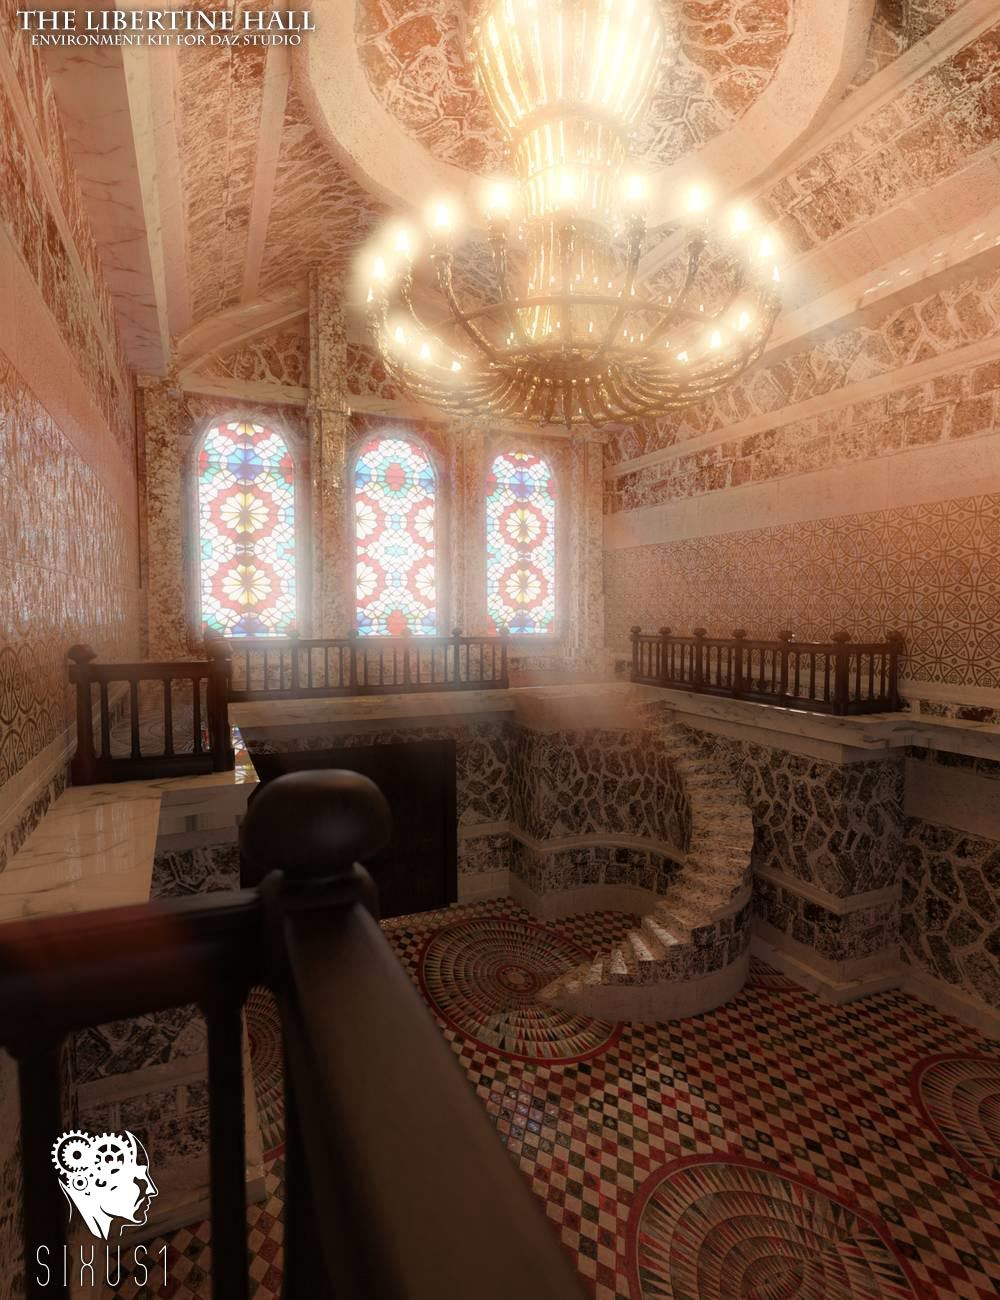 The Libertine Hall Environment Kit by RPublishing